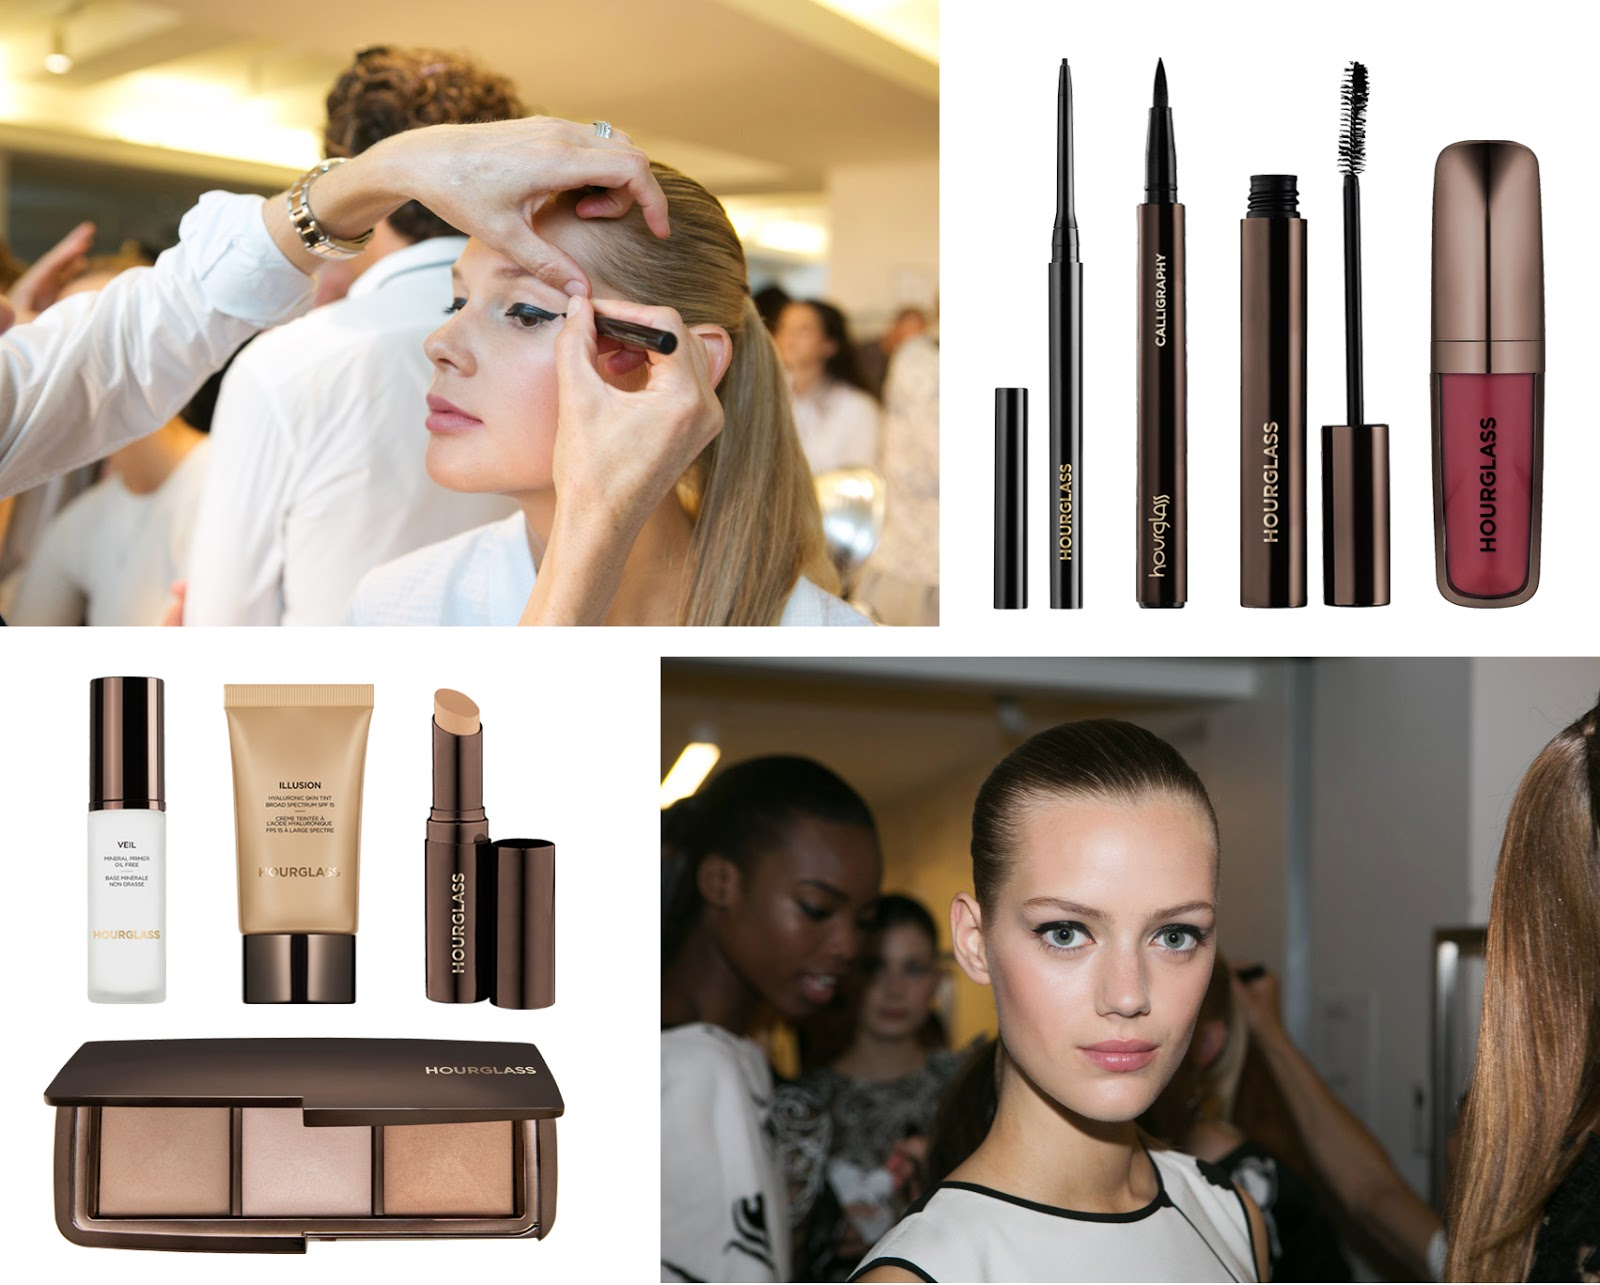 HOURGLASS COSMETICS AT OSCAR DE LA RENTA